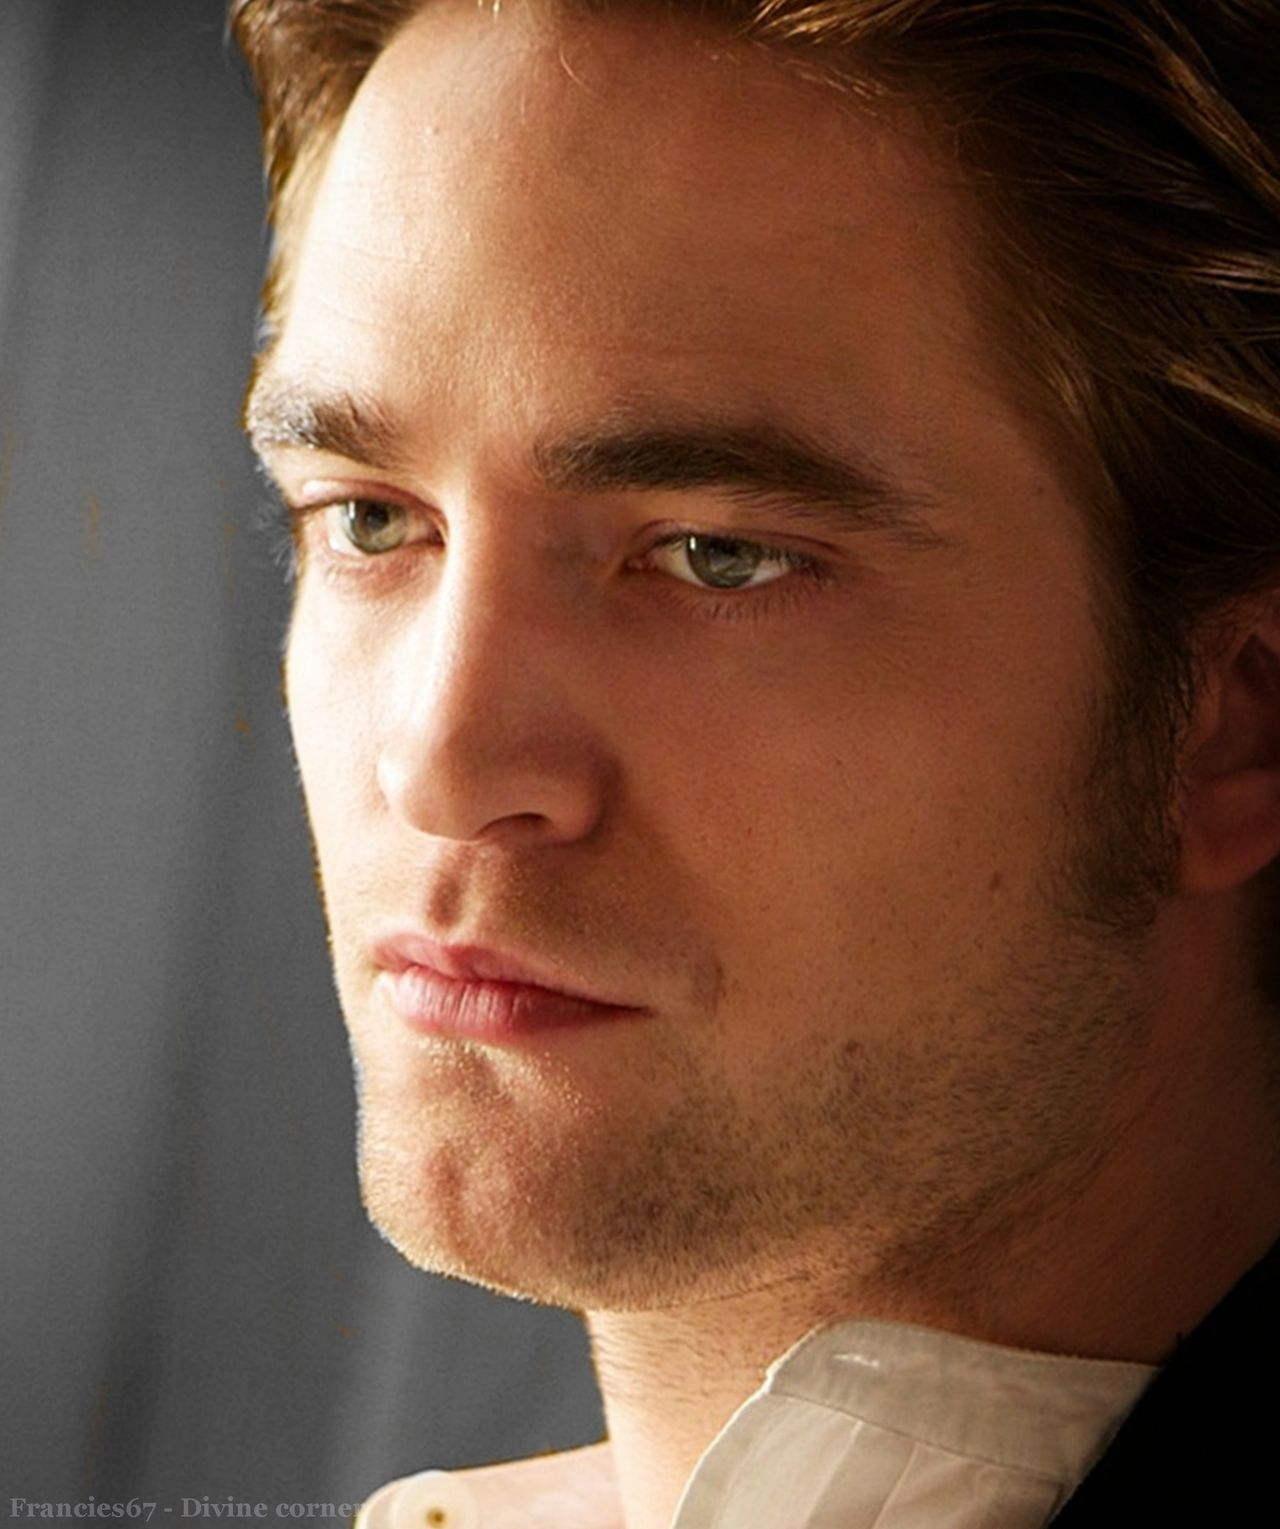 Bel Ami-great closeup, he's so beautiful!!